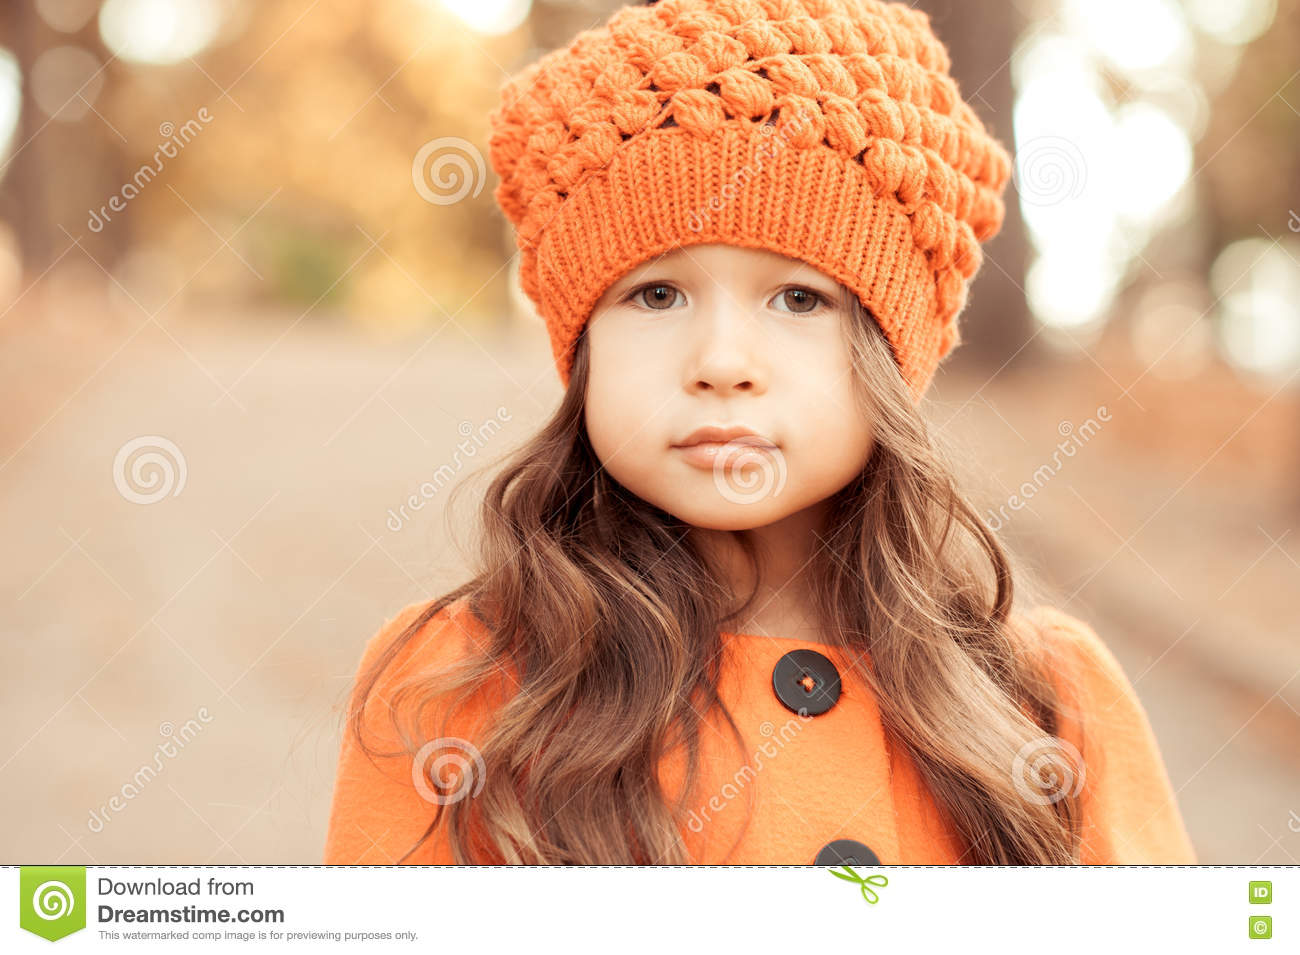 c1eed2ee2 Cute Baby Girl Posing Outdoors Stock Image - Image of light